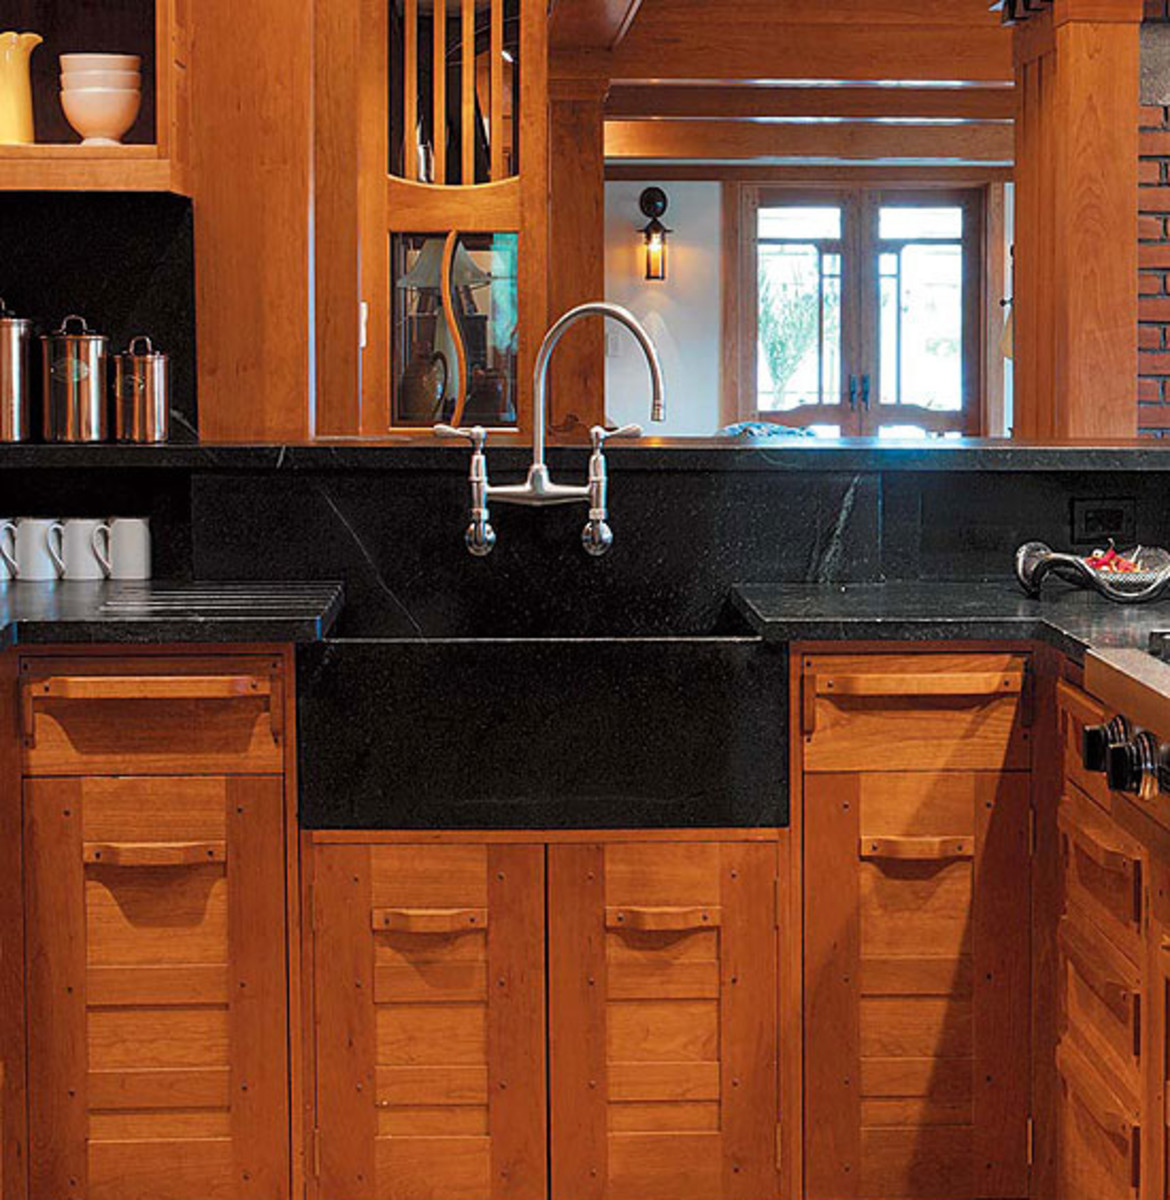 Kitchen Sinks Countertops Go Trendy Or Timeless Arts Crafts Homes And The Revival